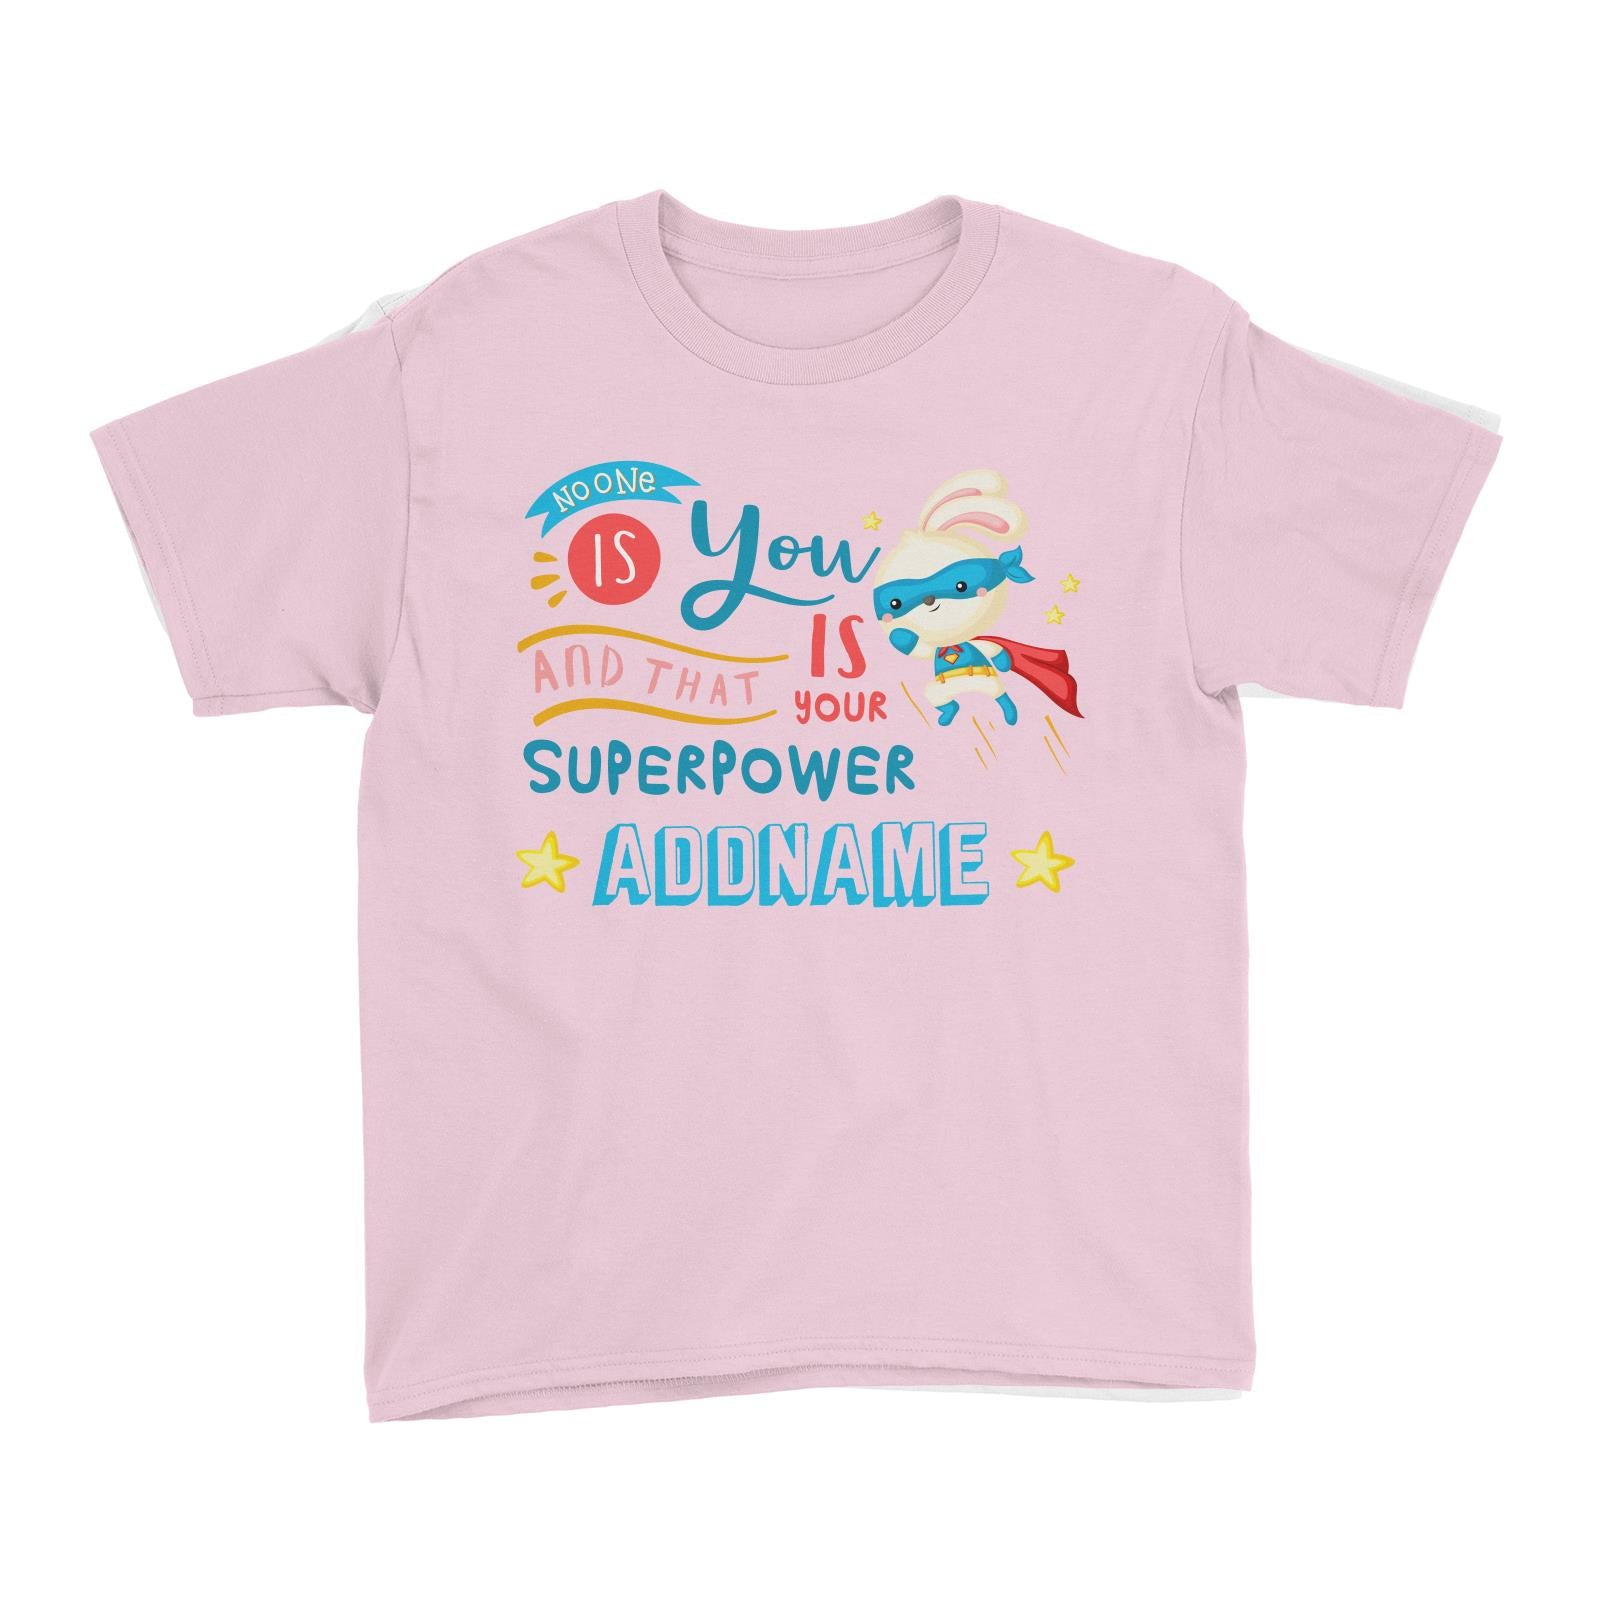 Children's Day Gift Series No One Is You And That Is Your Superpower Blue Addname Kid's T-Shirt